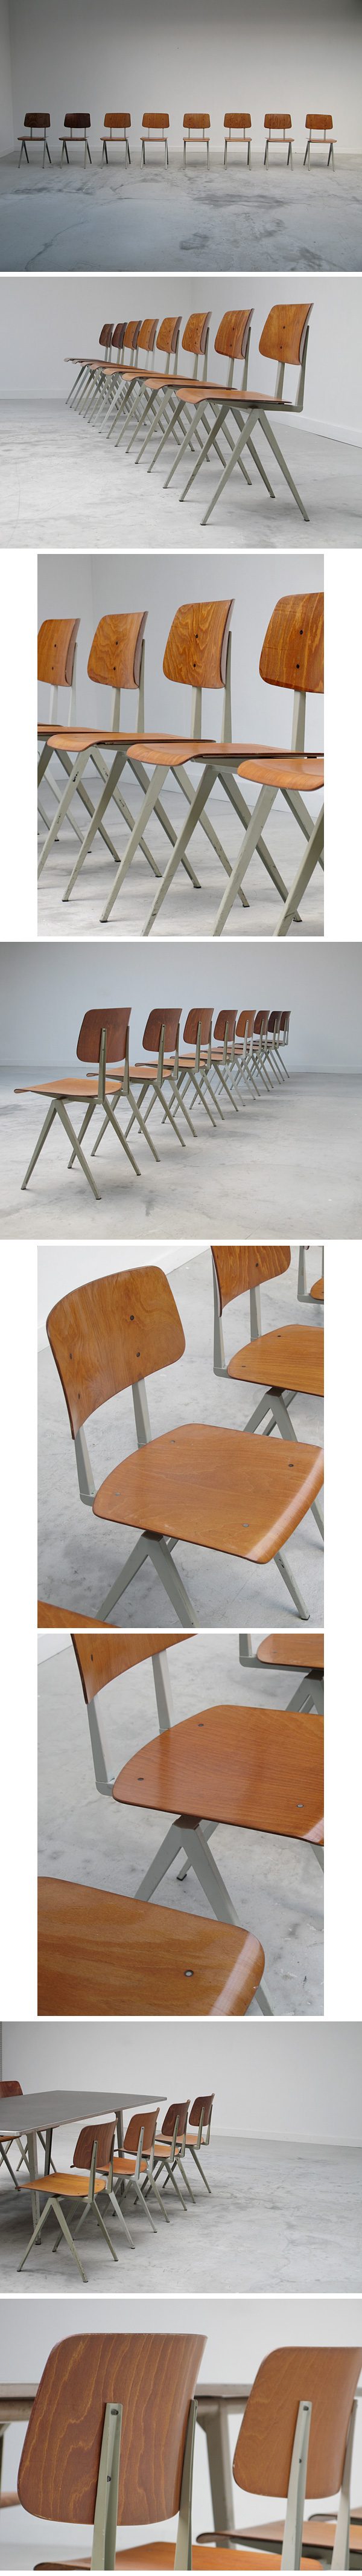 Industrial, chairs, friso kramer, prouve, utch, design, moma